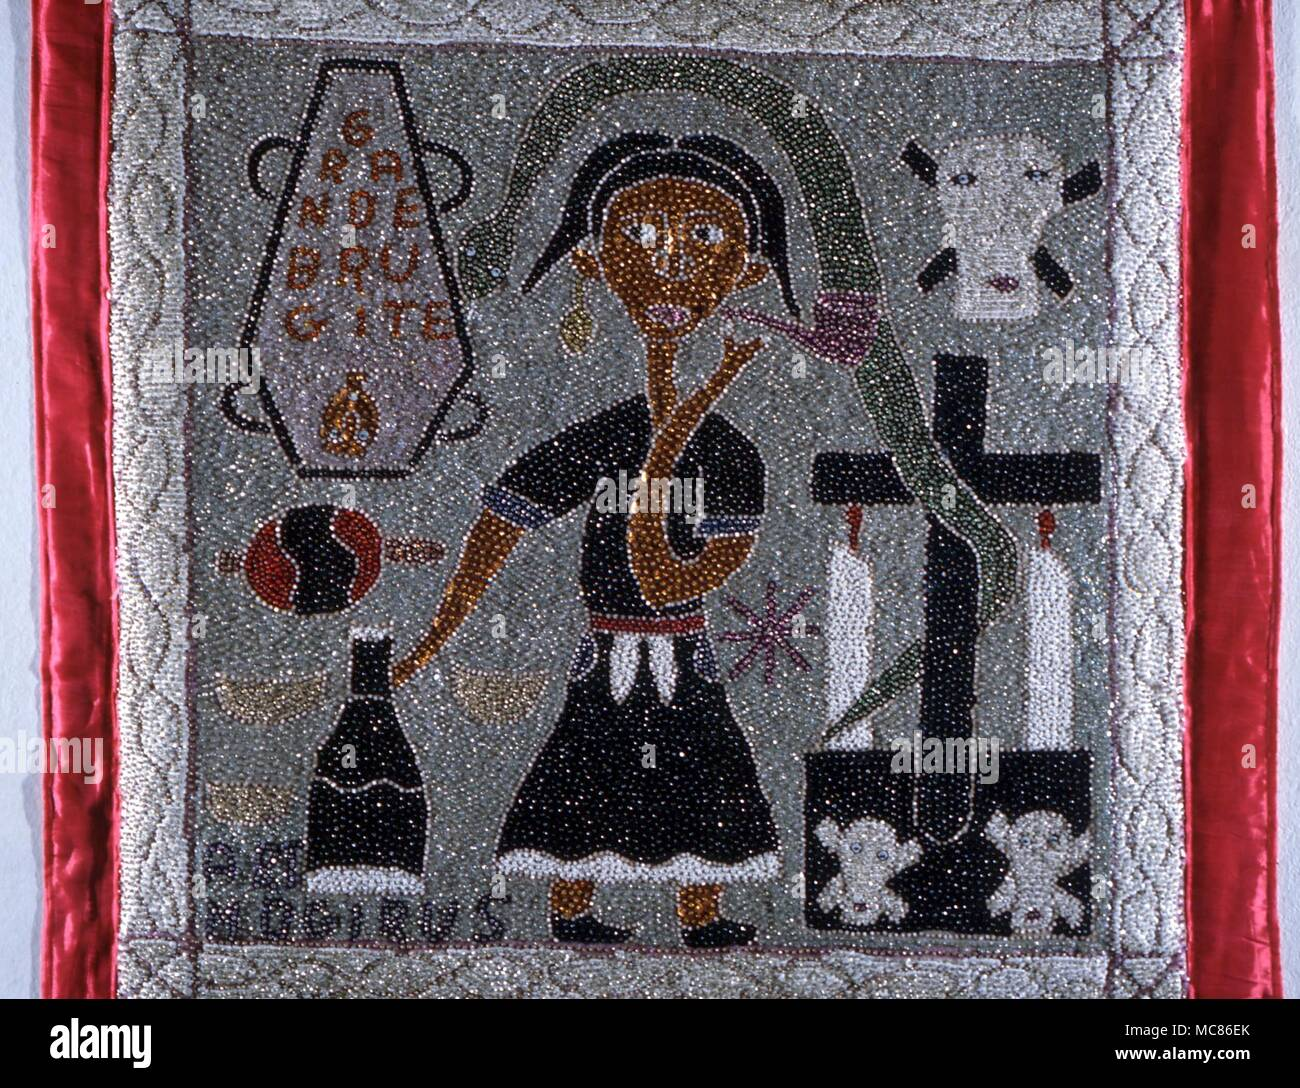 VOODOO ART VOUDOUN ALTAR CLOTH WITH VARIOUS CLASSICAL SYMBOLS